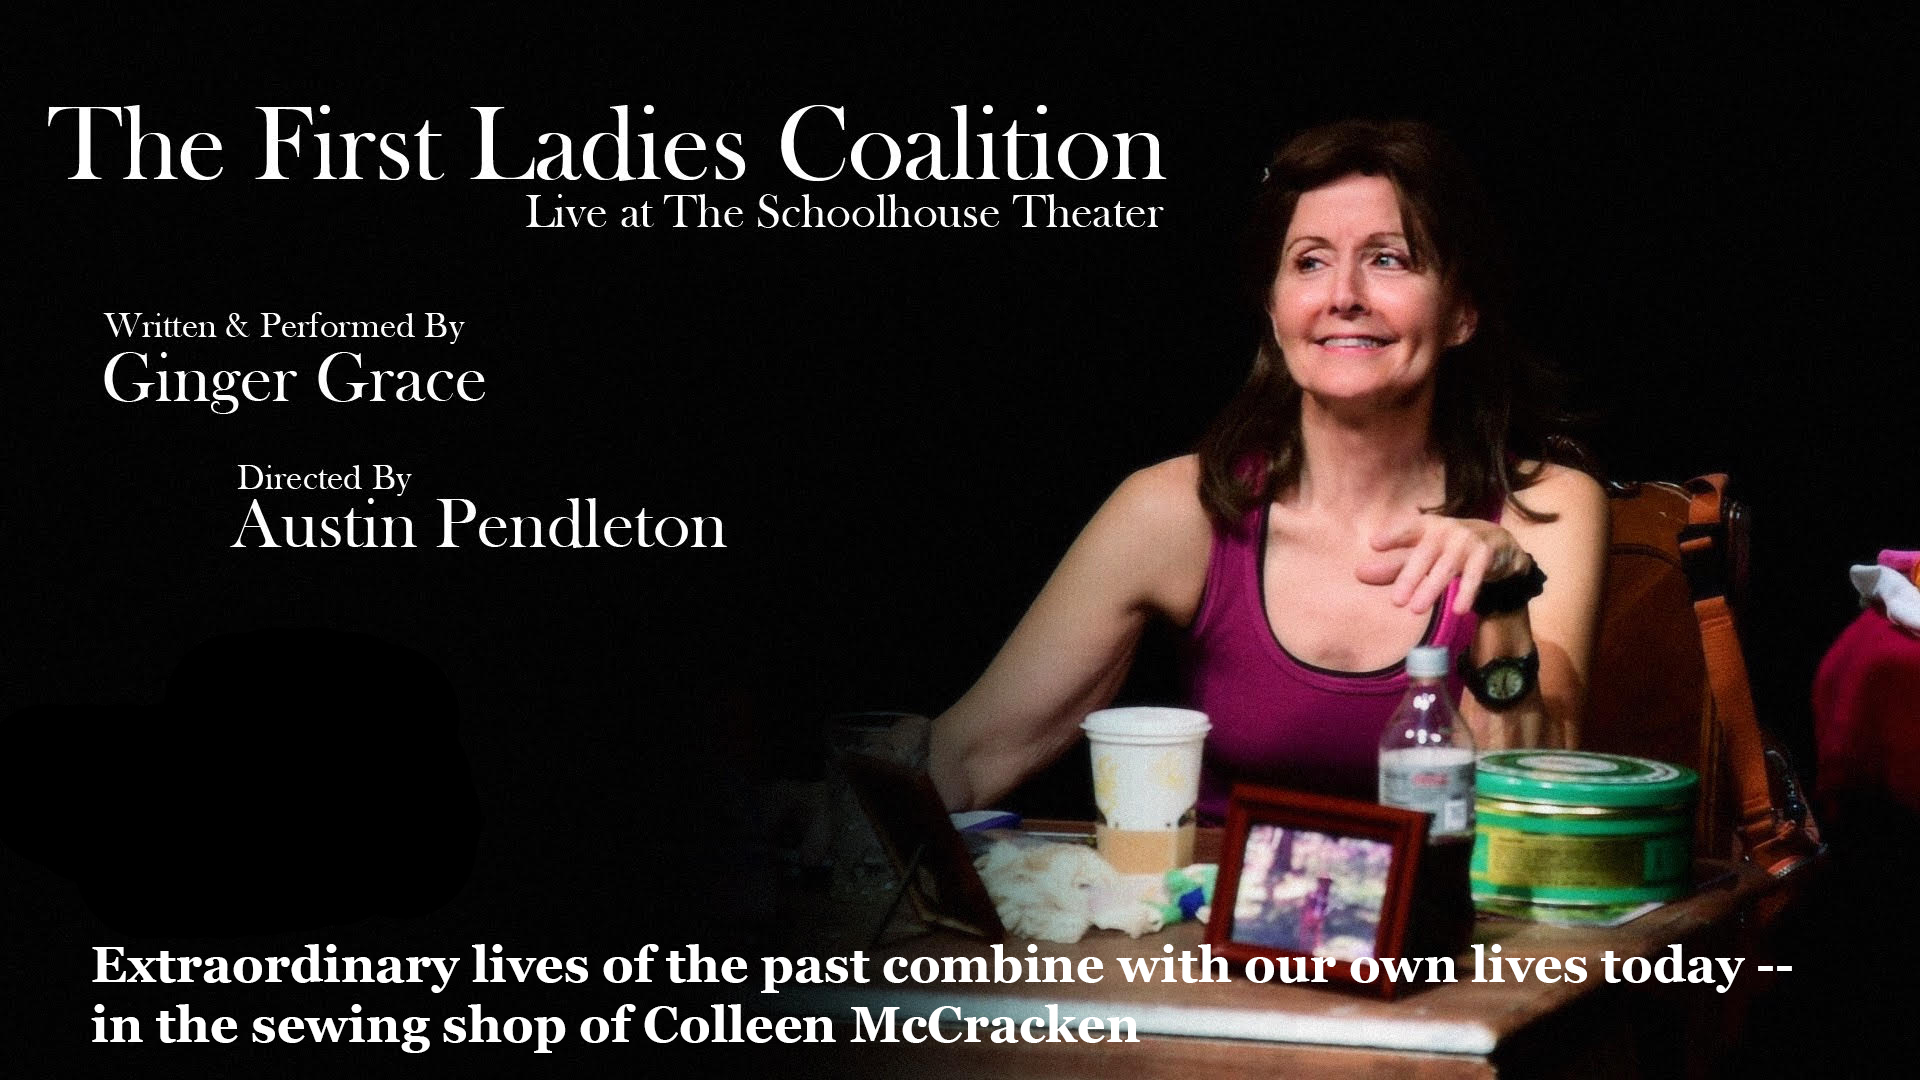 The First Ladies Coalition Live at The Schoolhouse Theater